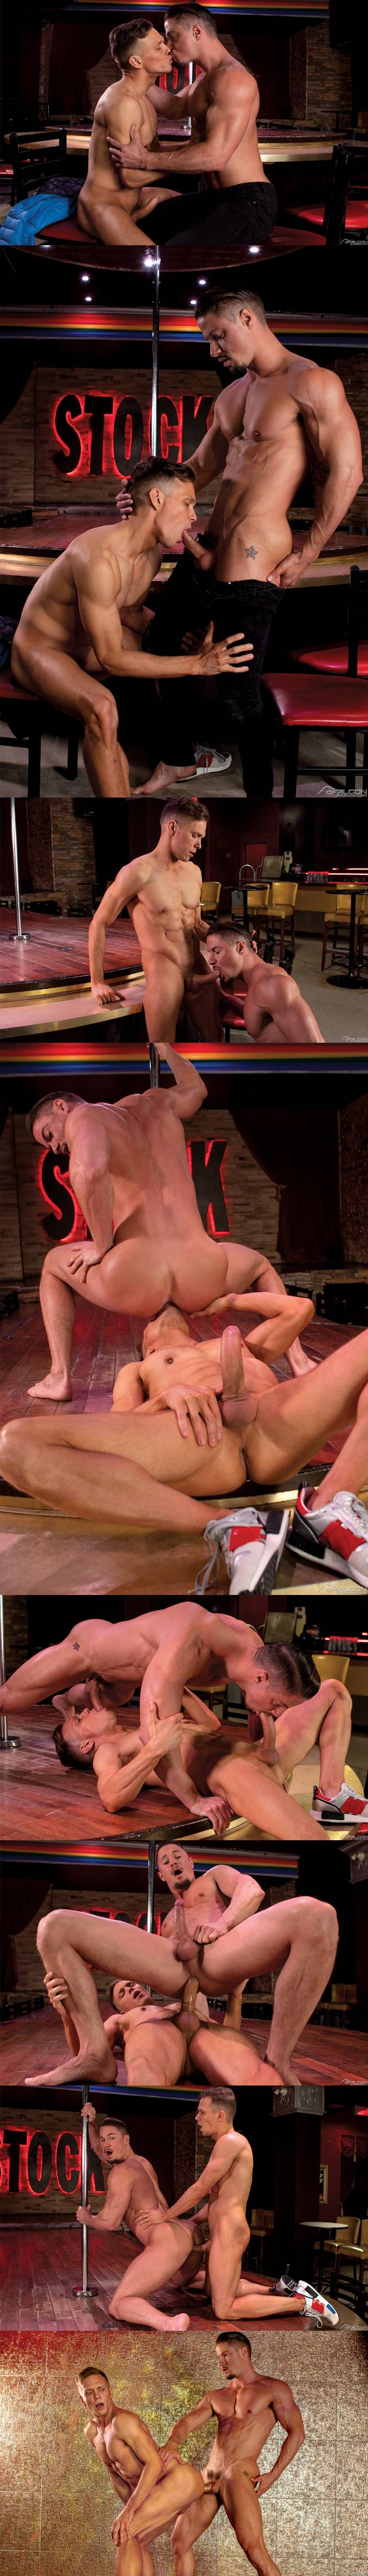 Ethan Chase and Skyy Knox - Love and Lust in Montreal 1